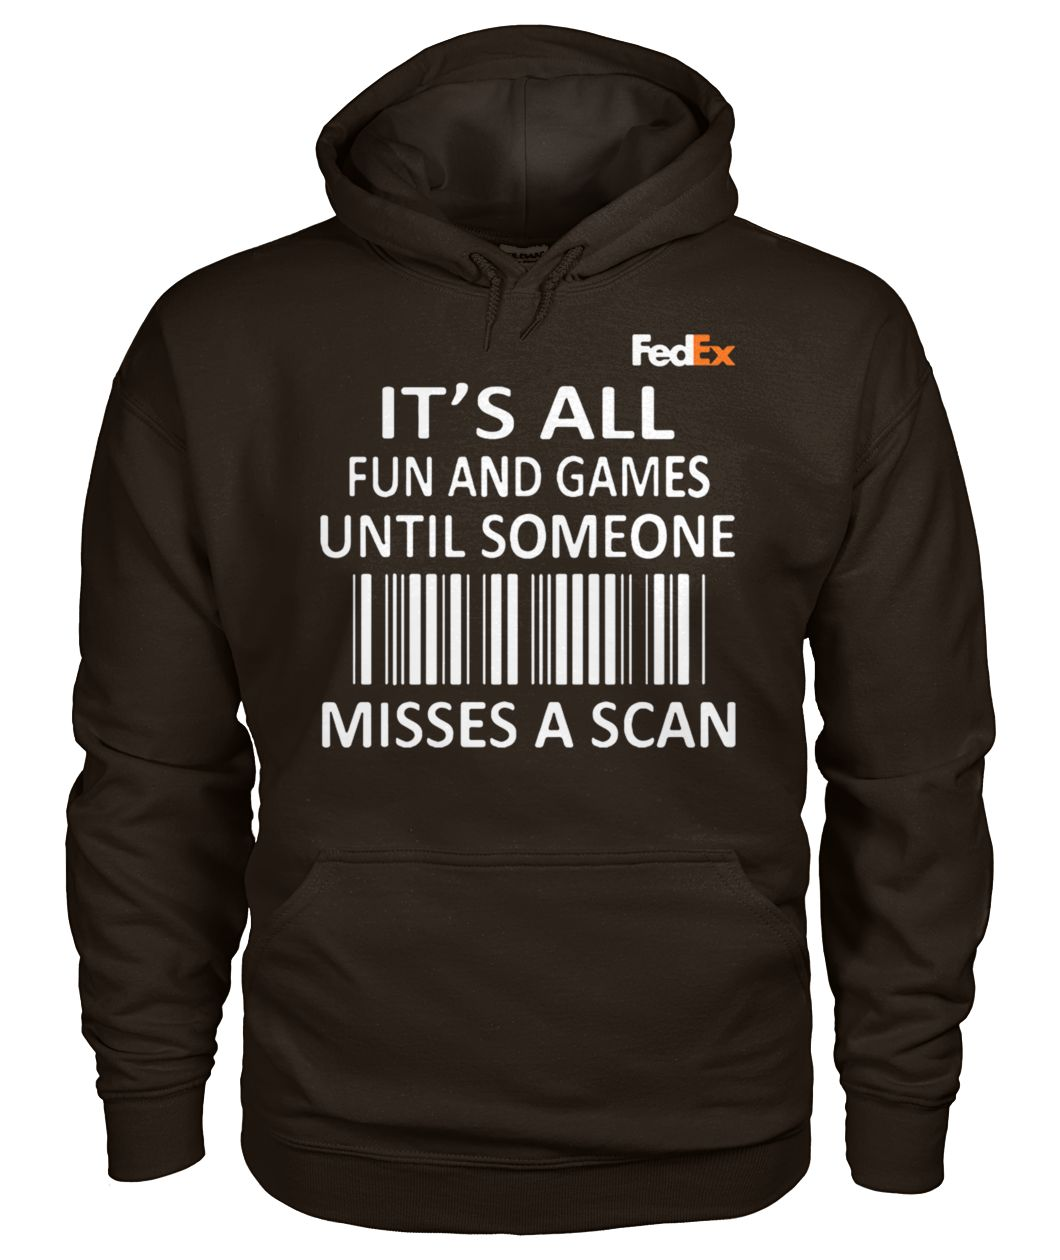 FedEx it's all fun and games until someone misses a scan hoodie